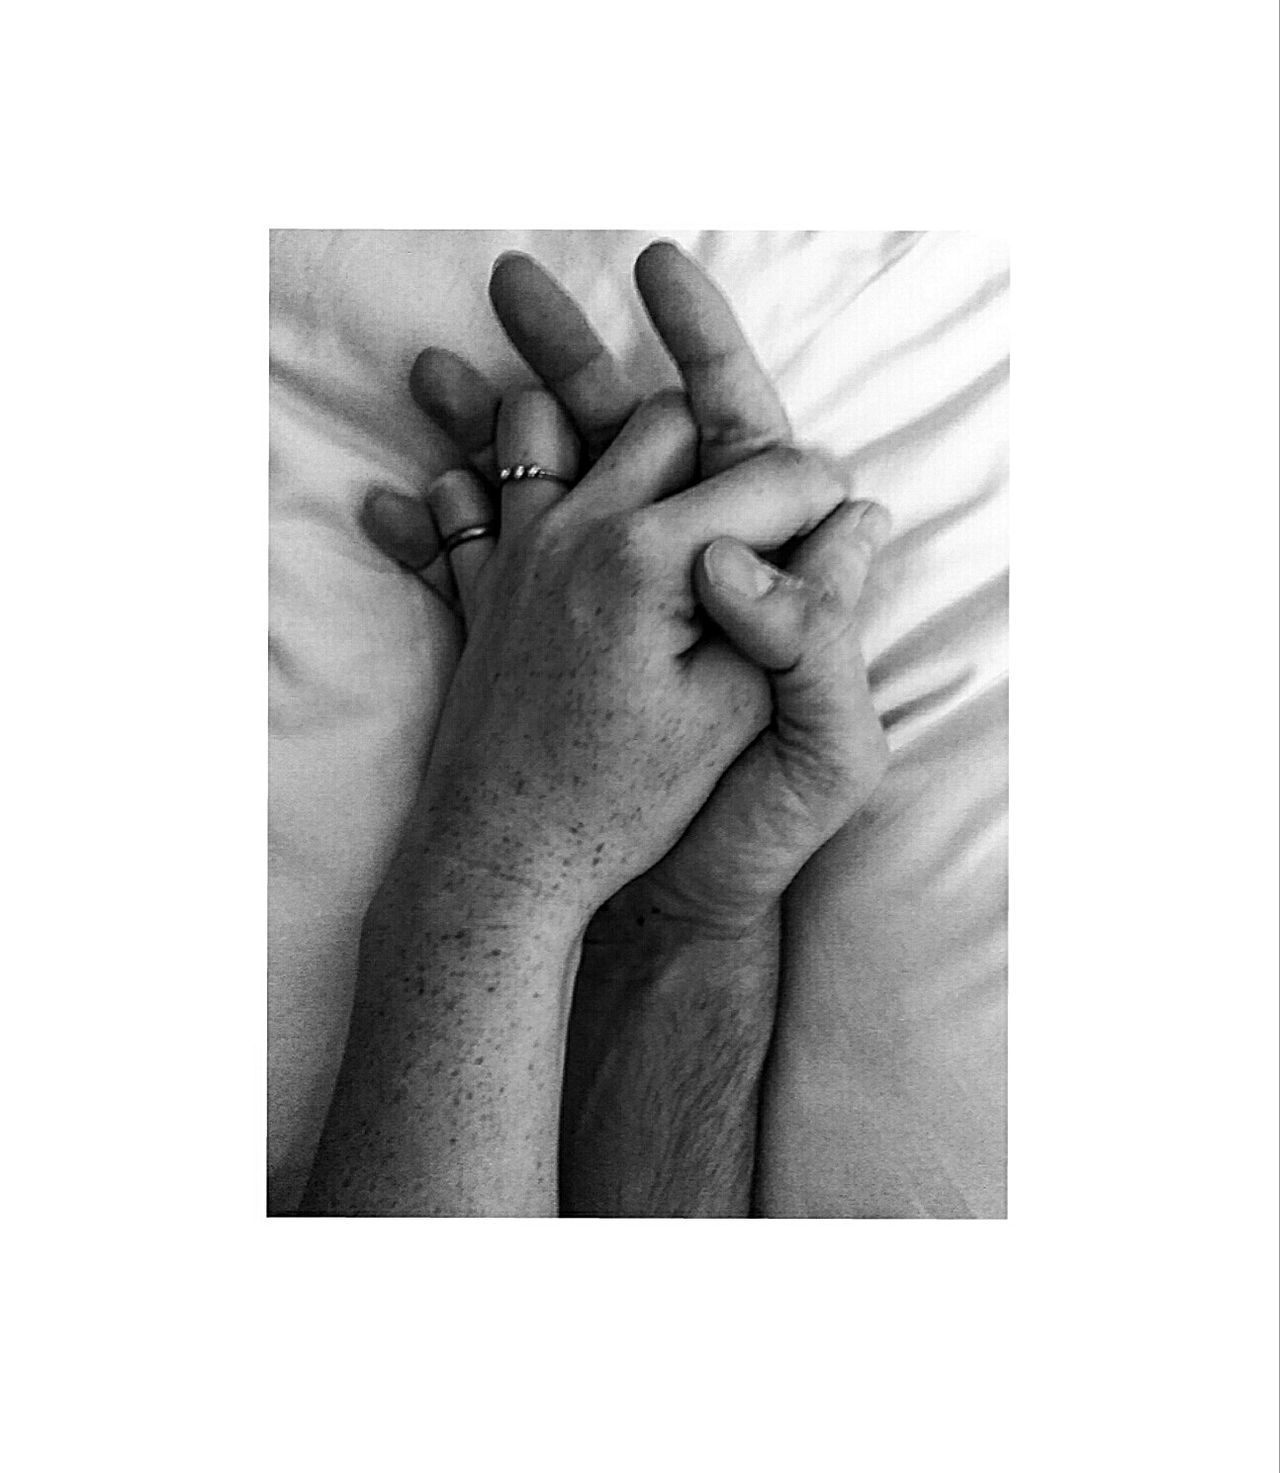 Soulmates Human Hand Love Soulmates Together Couplegoals Chill Forever First Eyeem Photo Handsinhands Blackandwhite Freckles Freckled Girl Moments